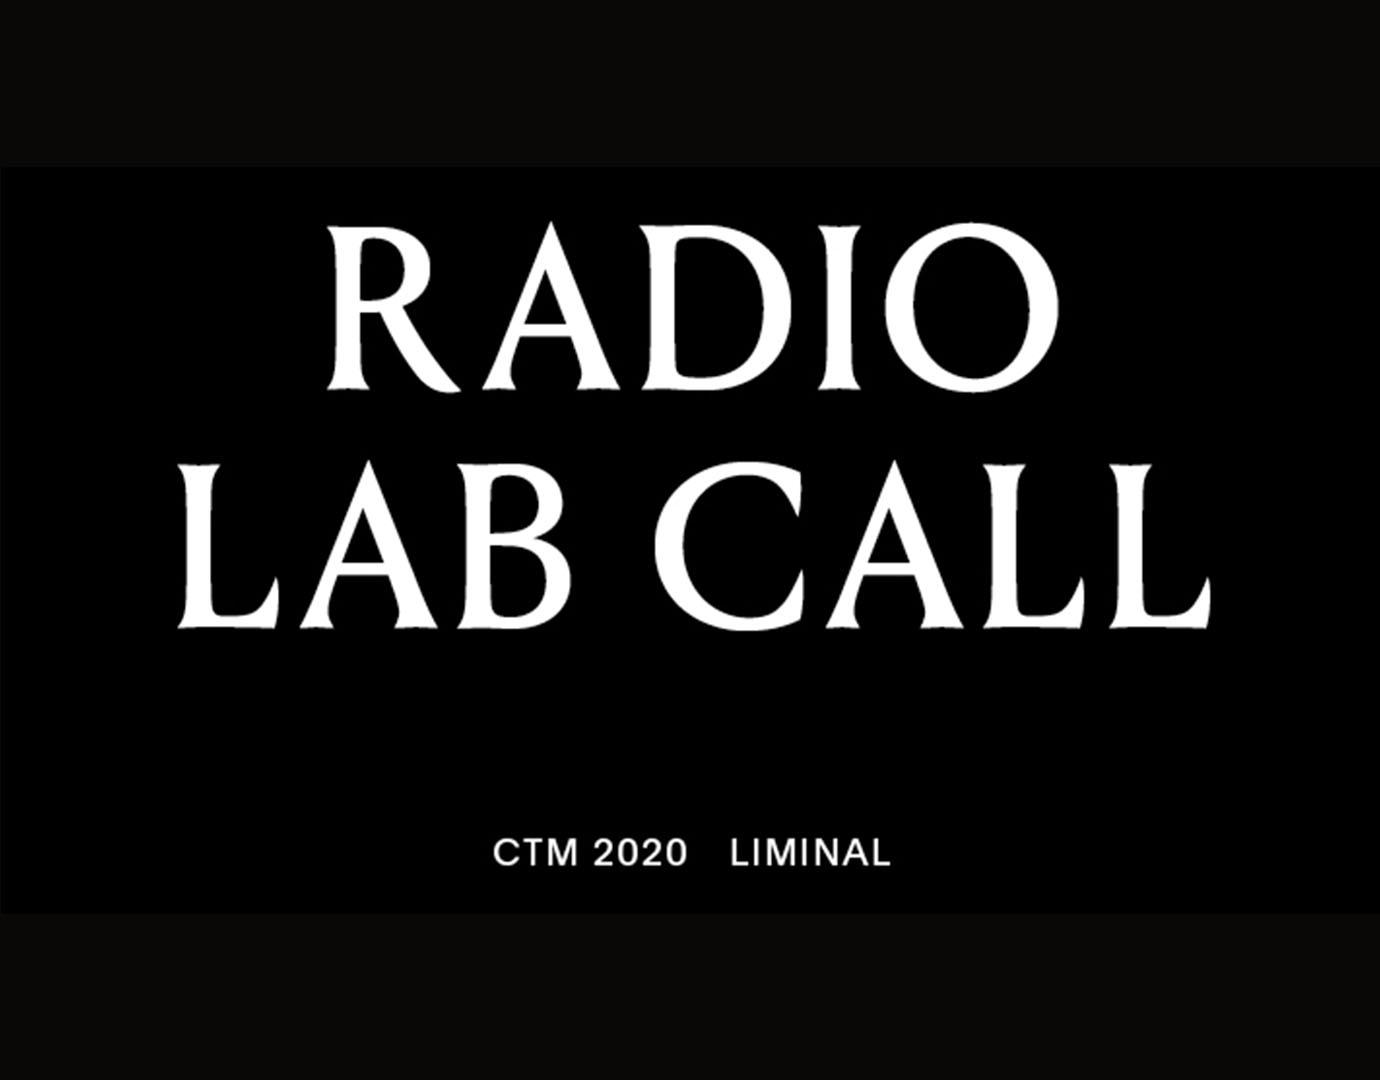 CTM Radio Lab open call announced for 2020 - The Wire